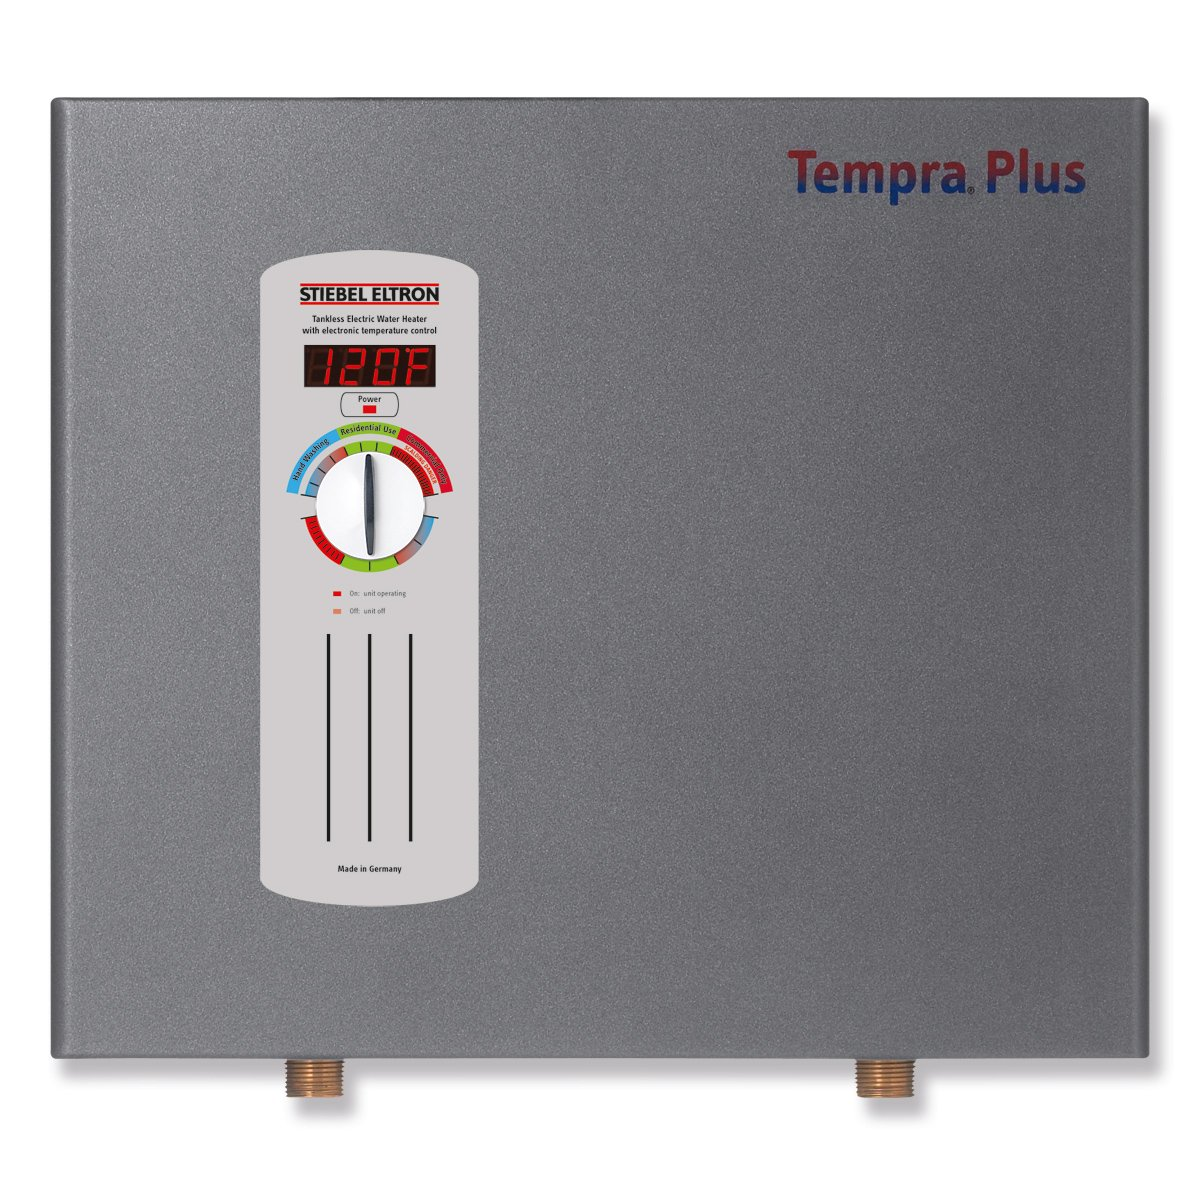 Stiebel Eltron Tempra 20 Plus Tankless Water Heater